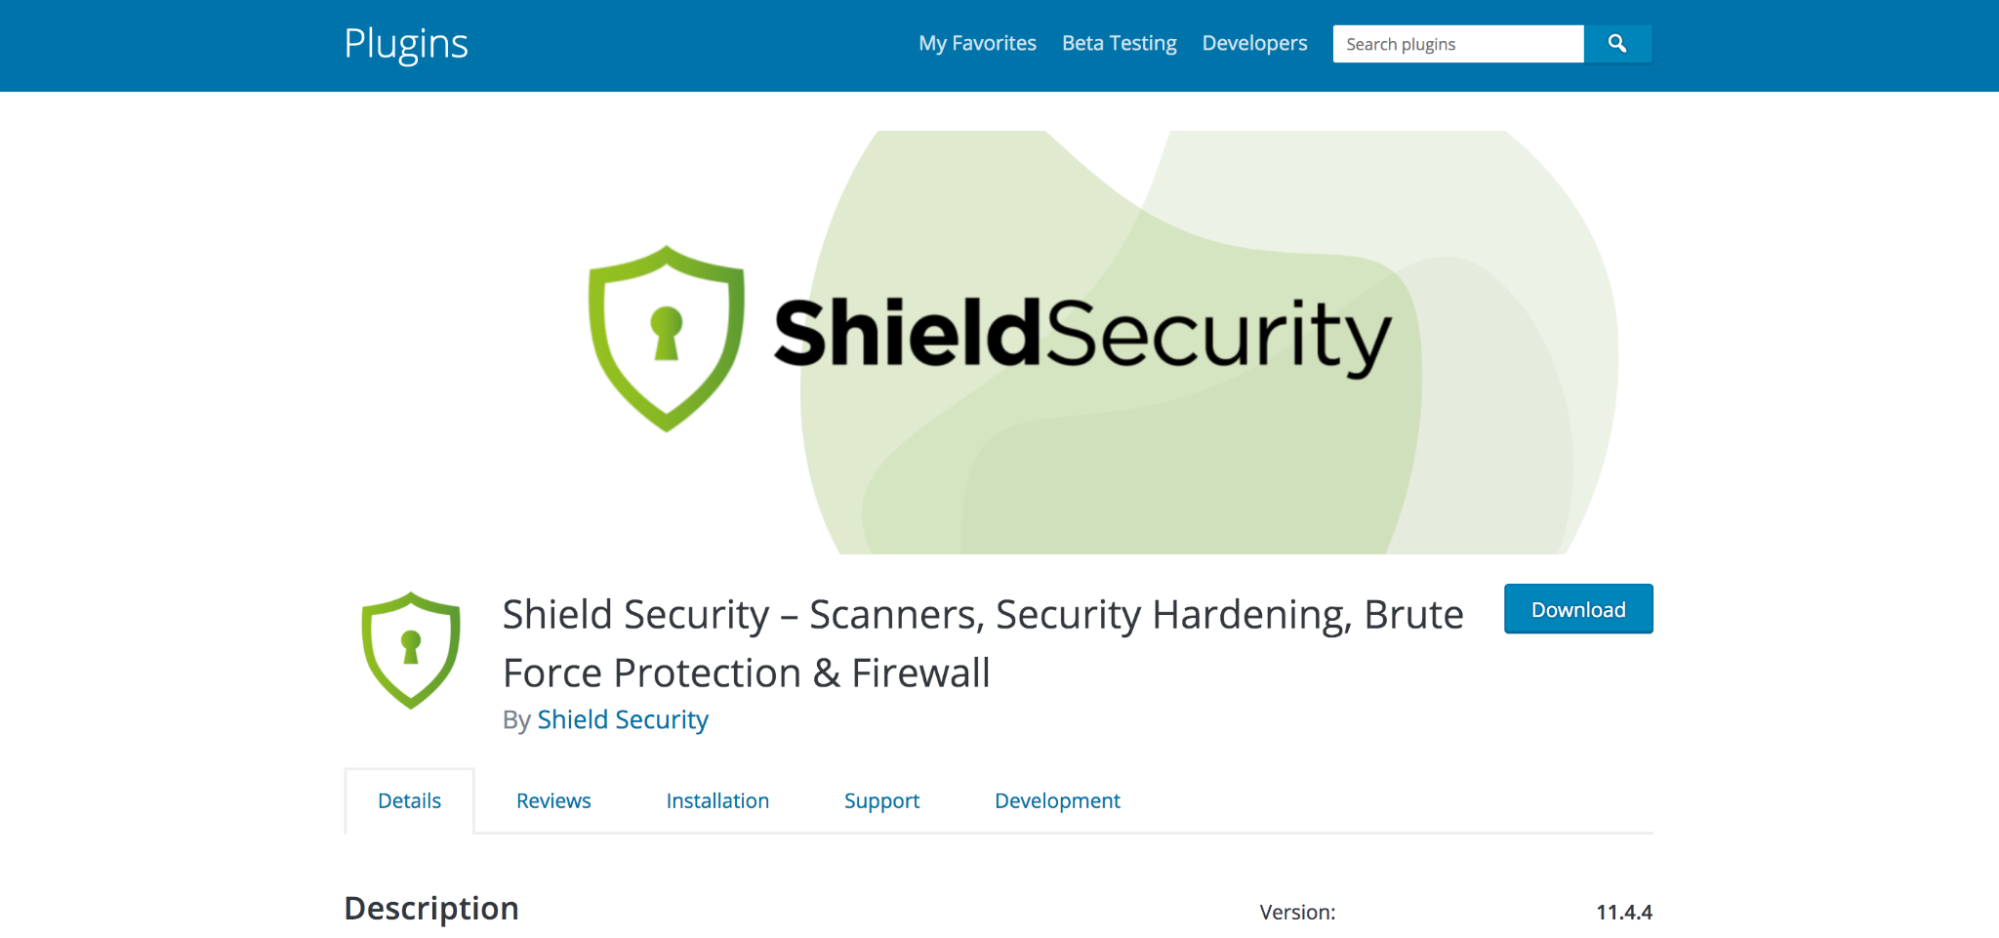 ShieldSecurity plugin page in the WordPress repository